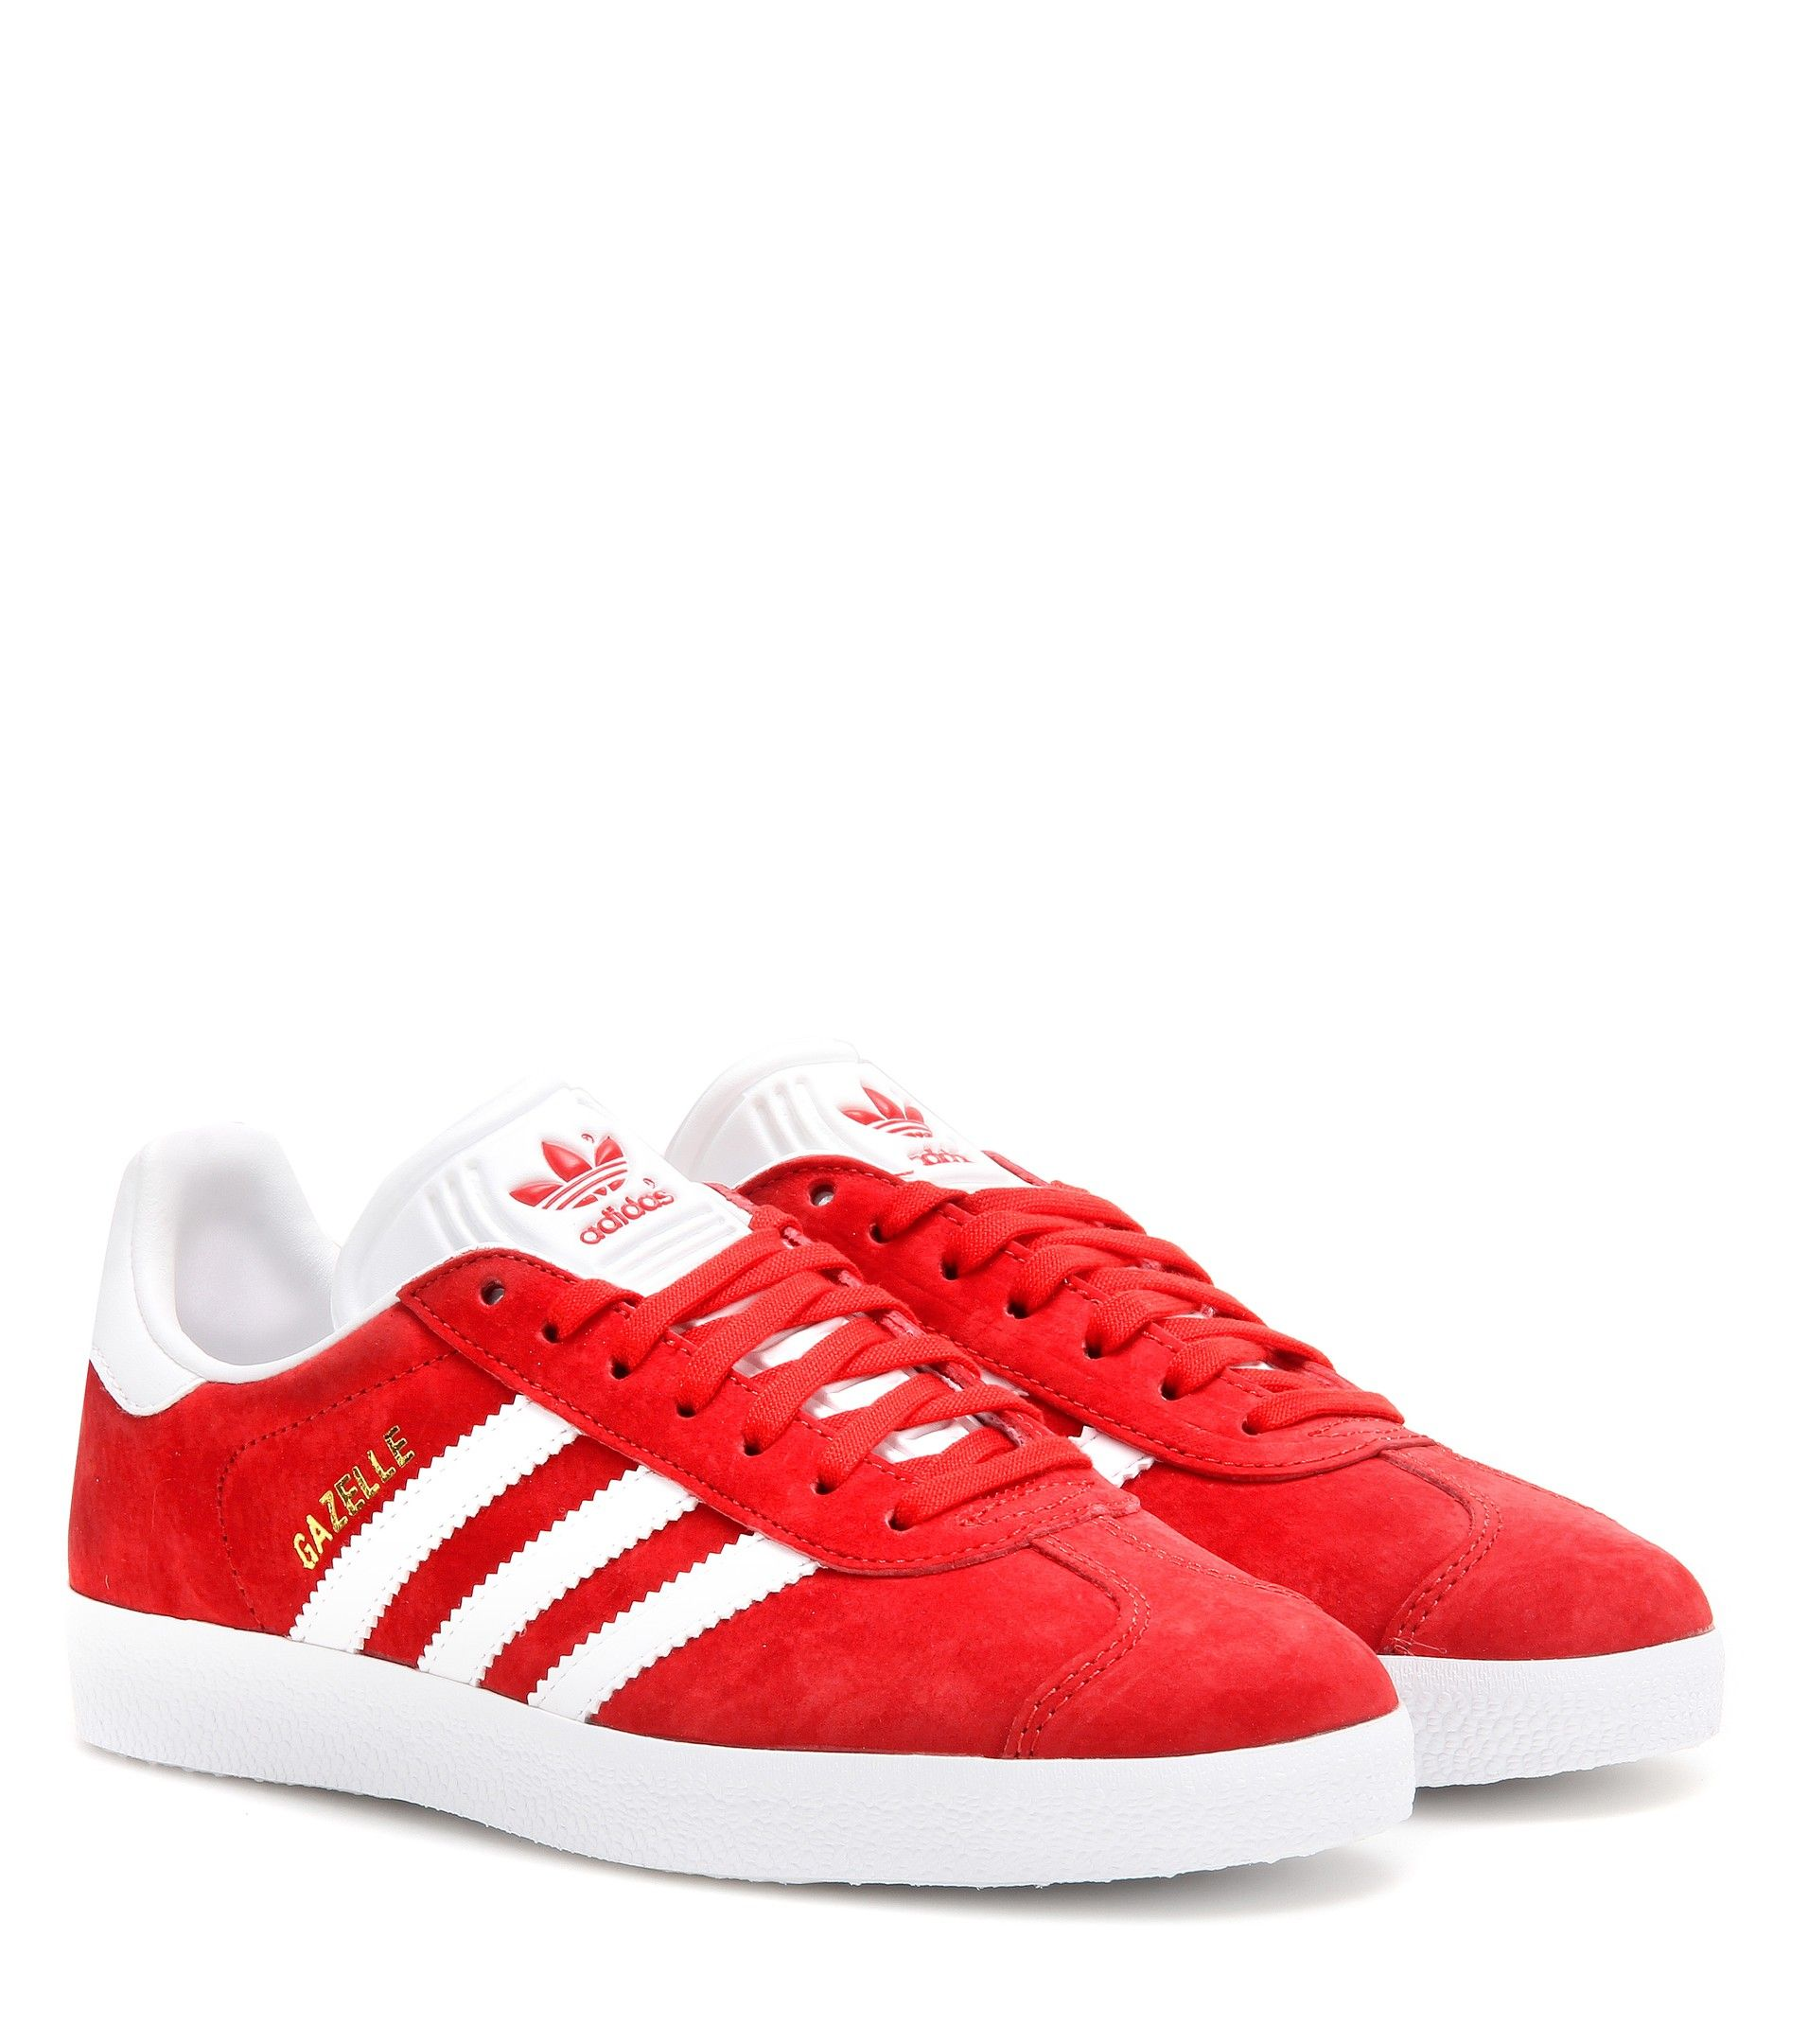 best website 8eb77 f4418 Rote Sneakers Gazelle aus Veloursleder